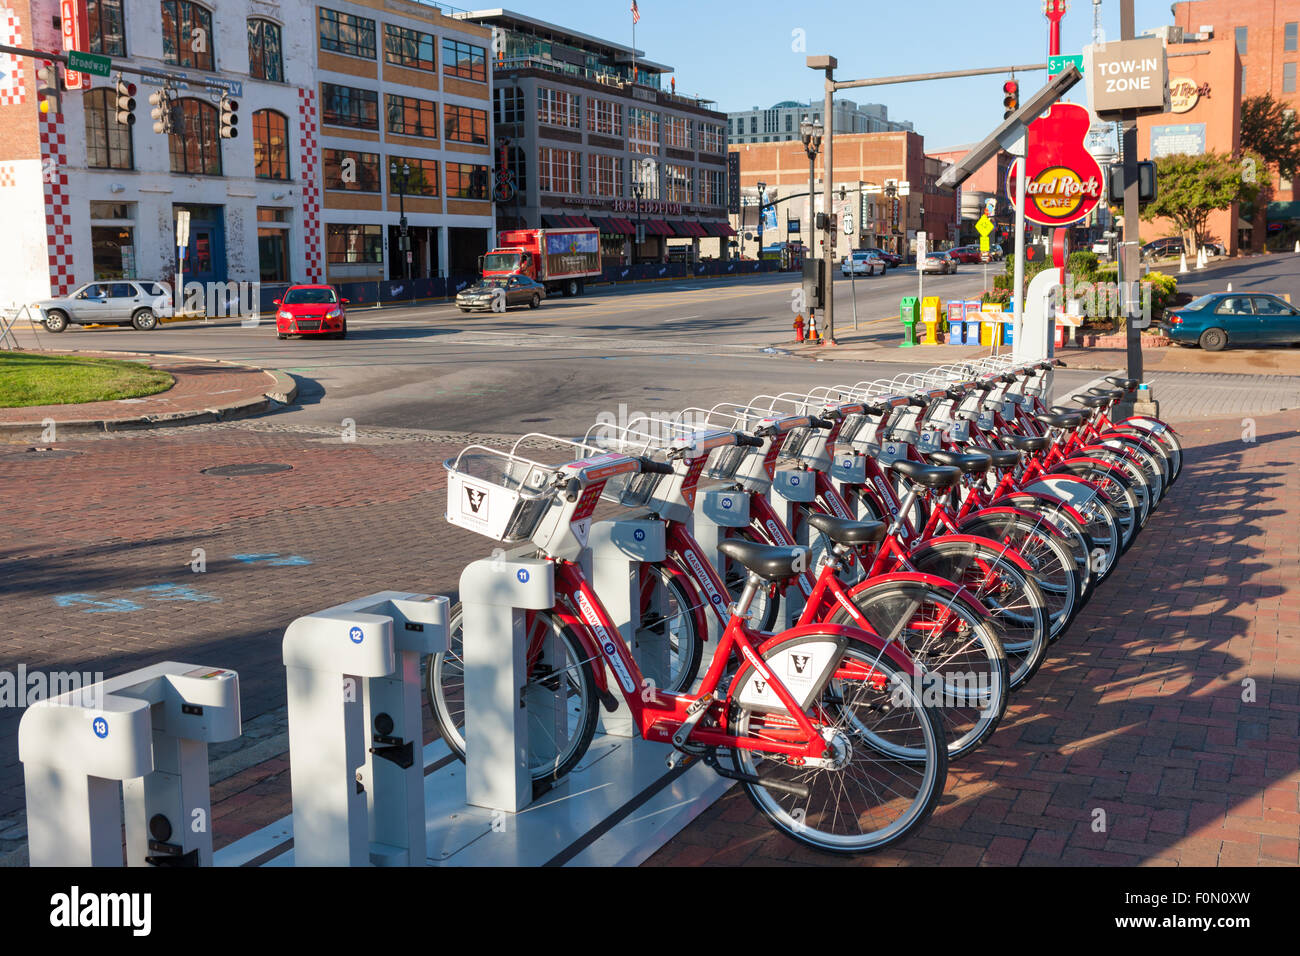 B-cycle bike sharing program bicycles docked at the Riverfront Station B-station in Nashville, Tennessee. - Stock Image